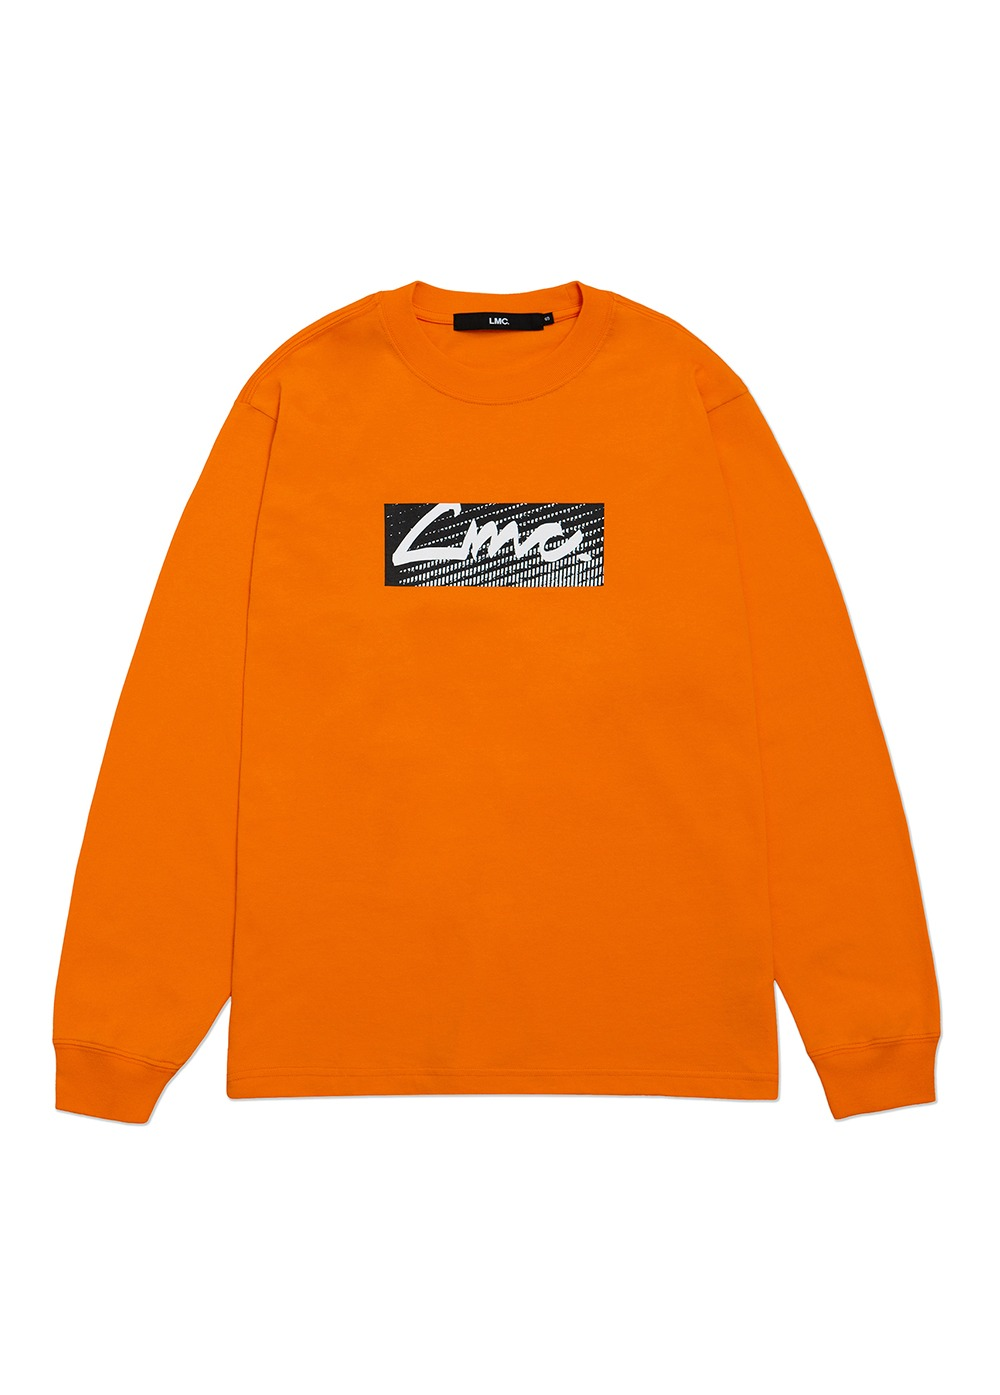 LMC D-NOISE LONG SLV TEE orange